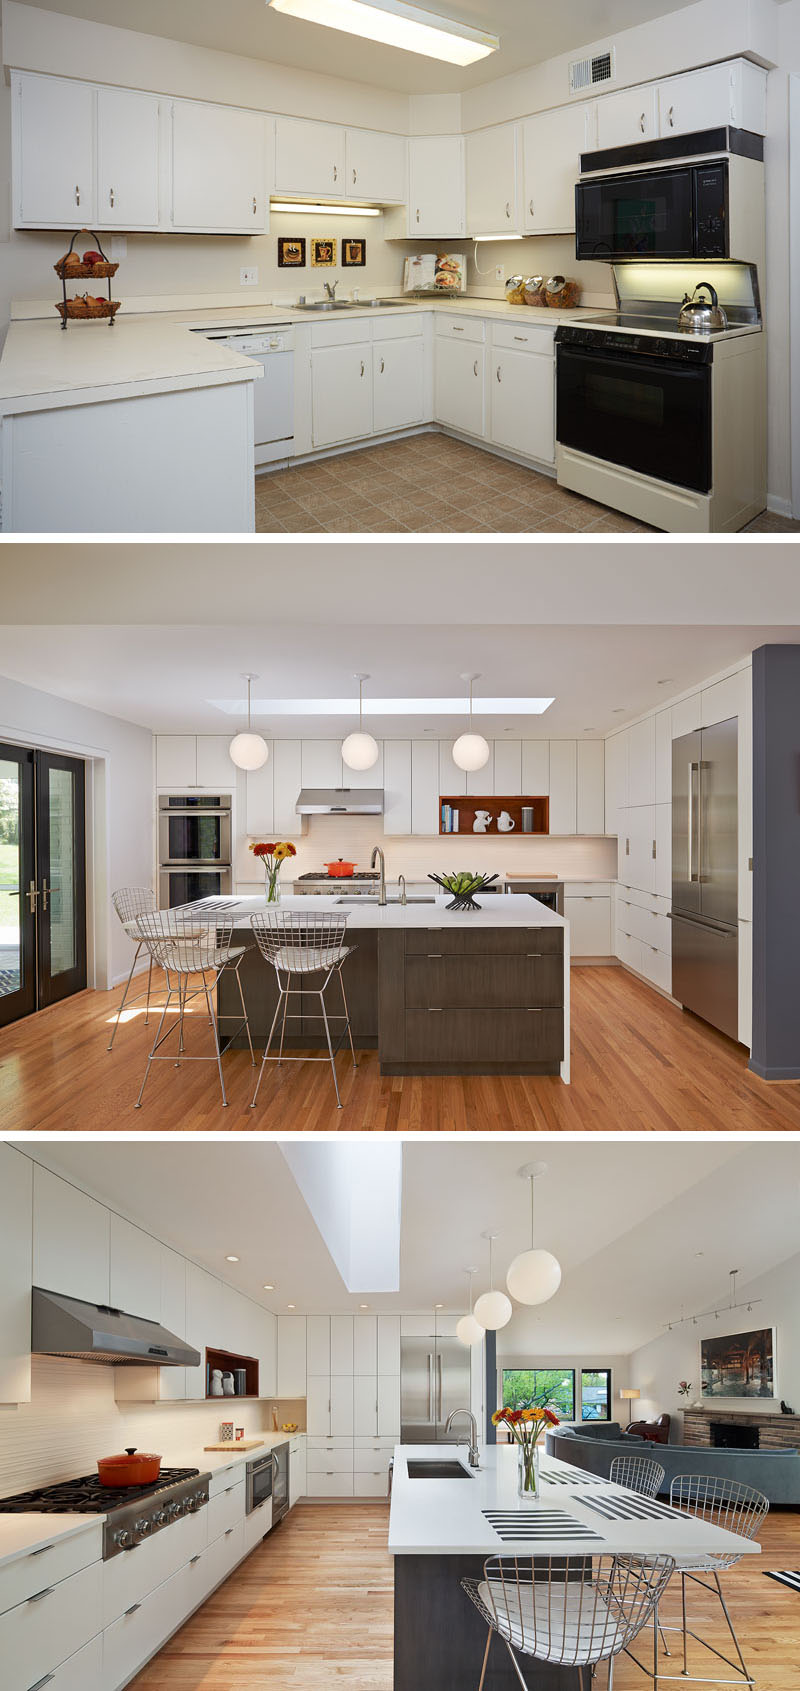 This outdated kitchen was transformed into a brighter happier space by opening it up, changing the light fixtures, upgrading the appliances and adding a central island which helps connect the kitchen to the other areas in this modern home.